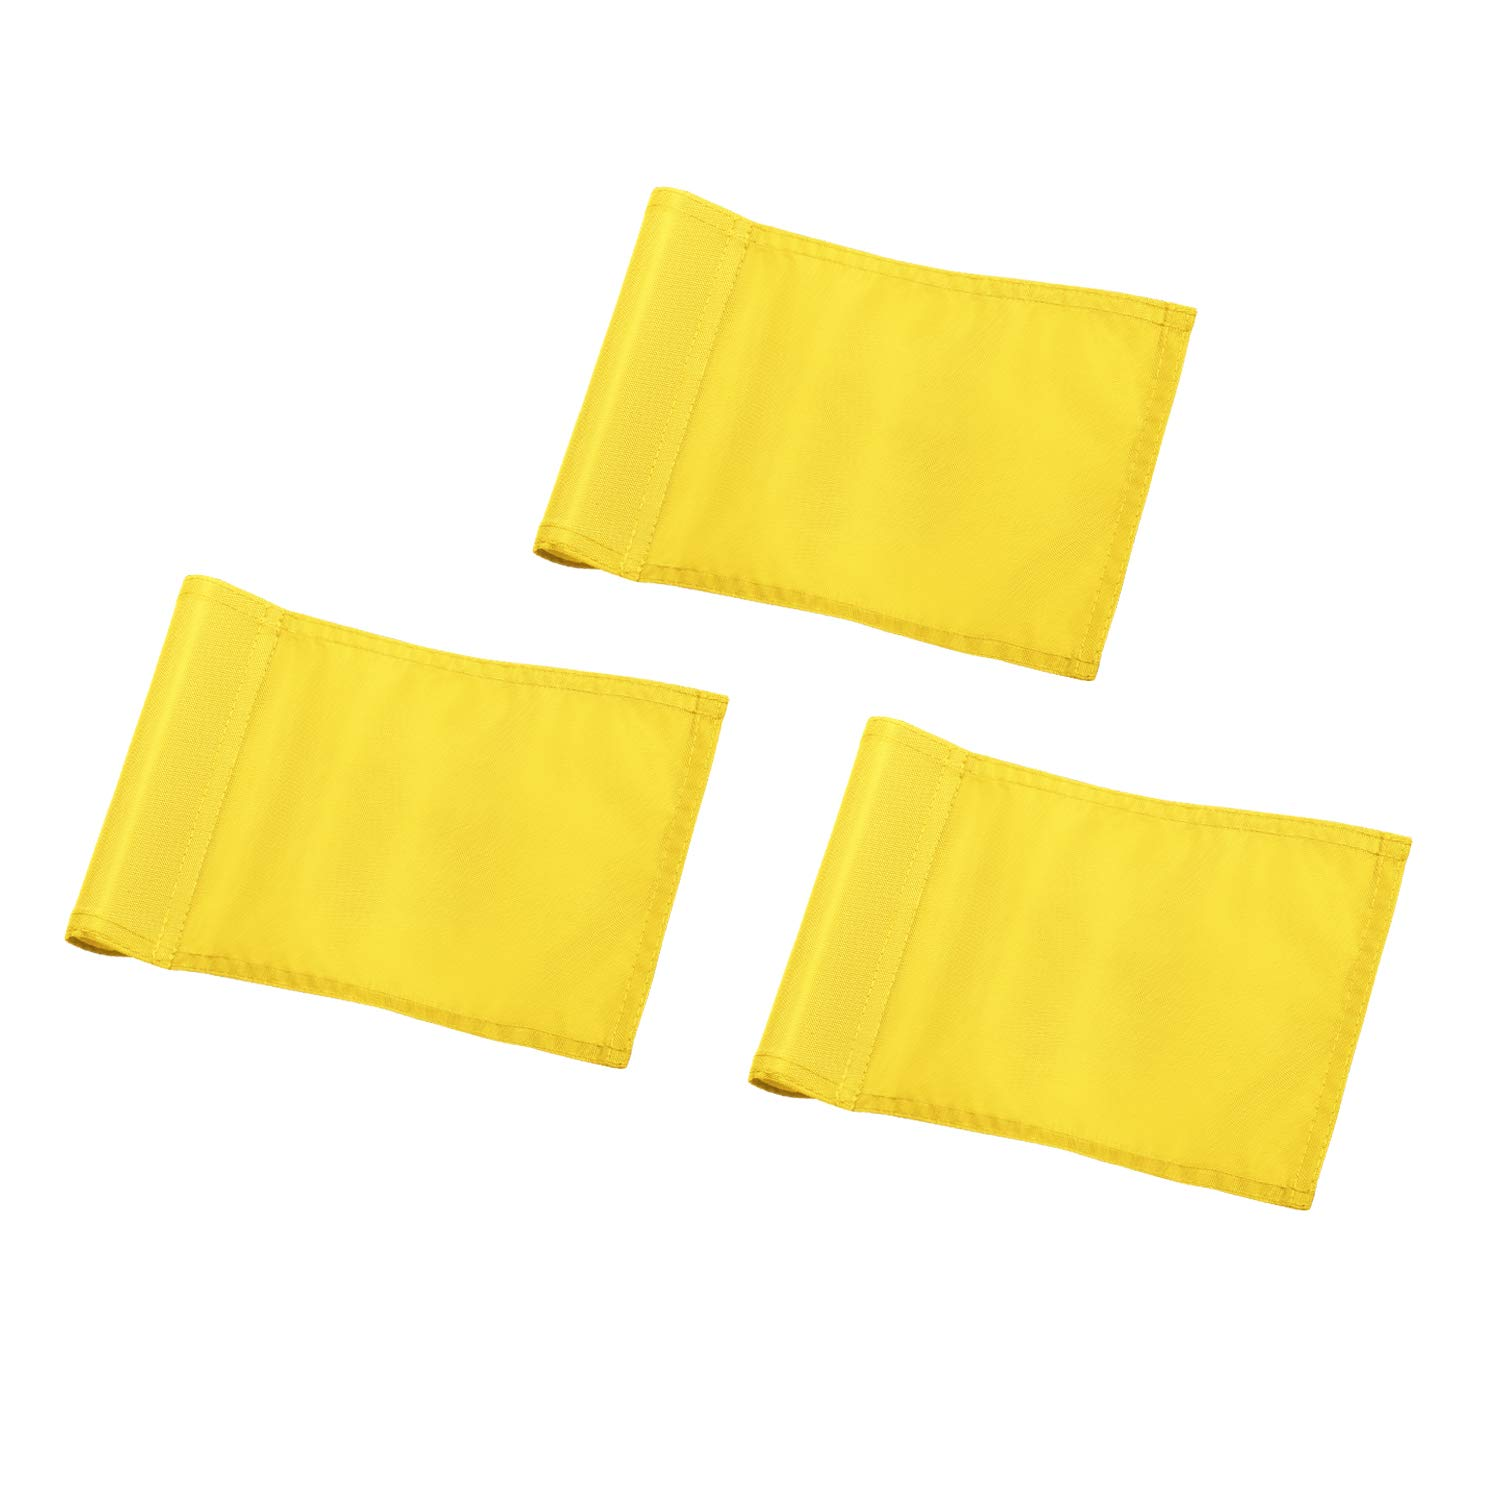 KINGTOP Solid Golf Flag with Plastic Insert, Putting Green Flags for Yard, Indoor/Outdoor, Garden Pin Flags, 420D Premium Nylon Flag, 8'' L x 6'' H, Yellow, 3-Pack by KINGTOP